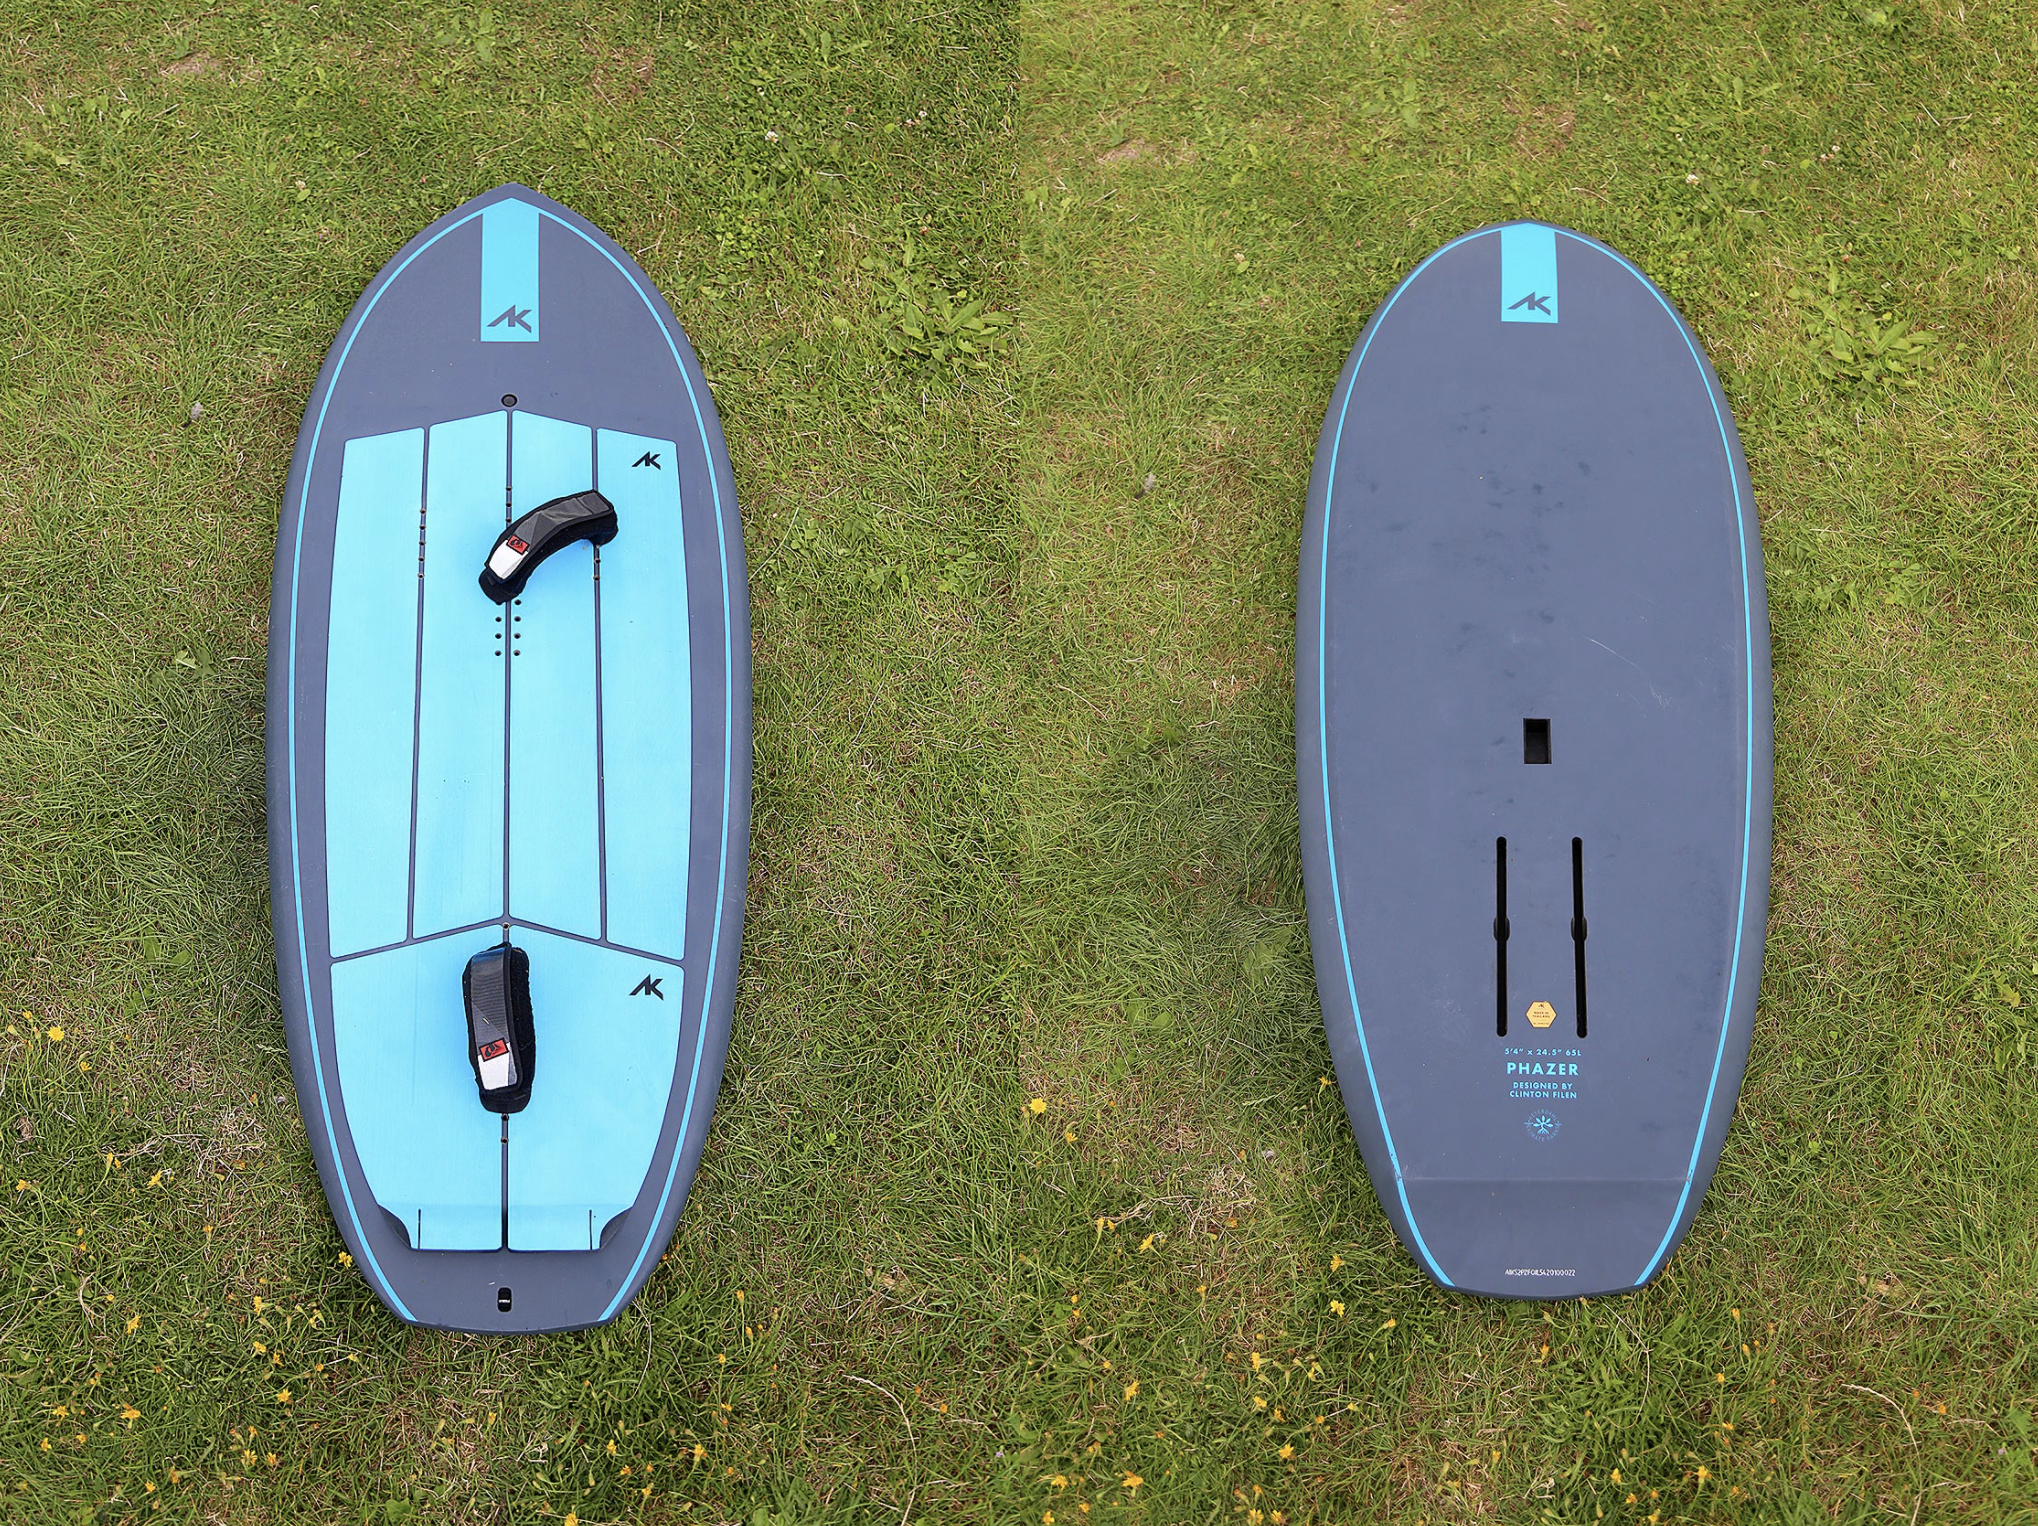 The Phazer Foilboard – WSW Review 6